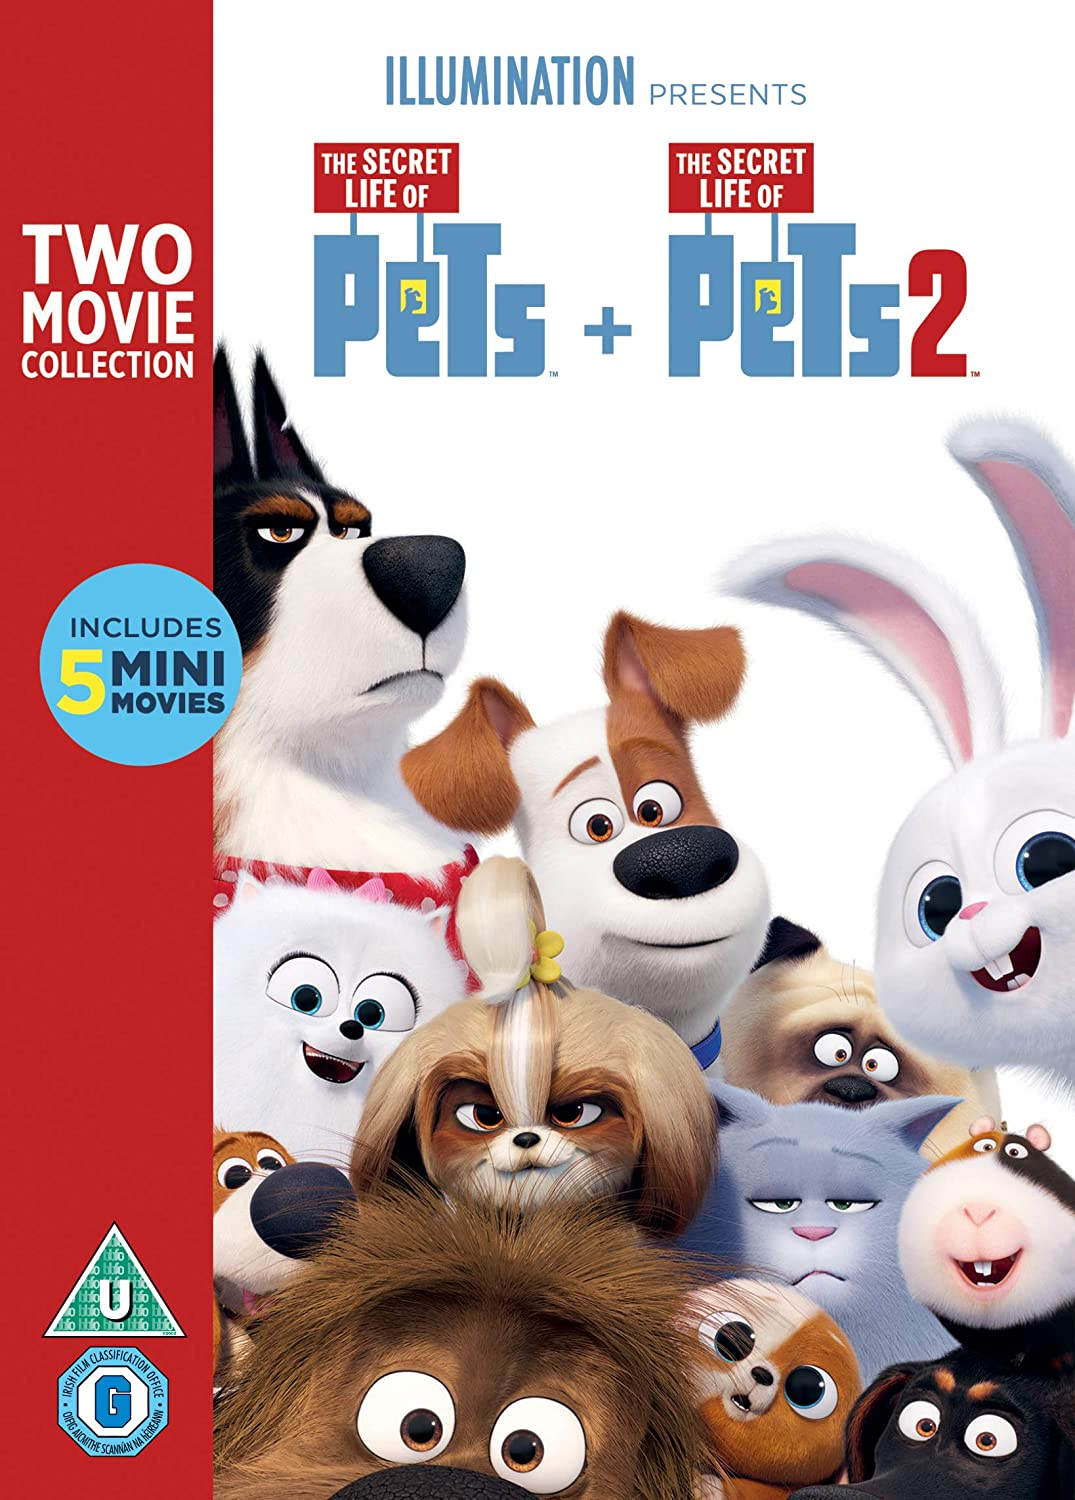 Children/'s Toy Game Gift Idea Secret Life of Pets Colour Your Own Bag